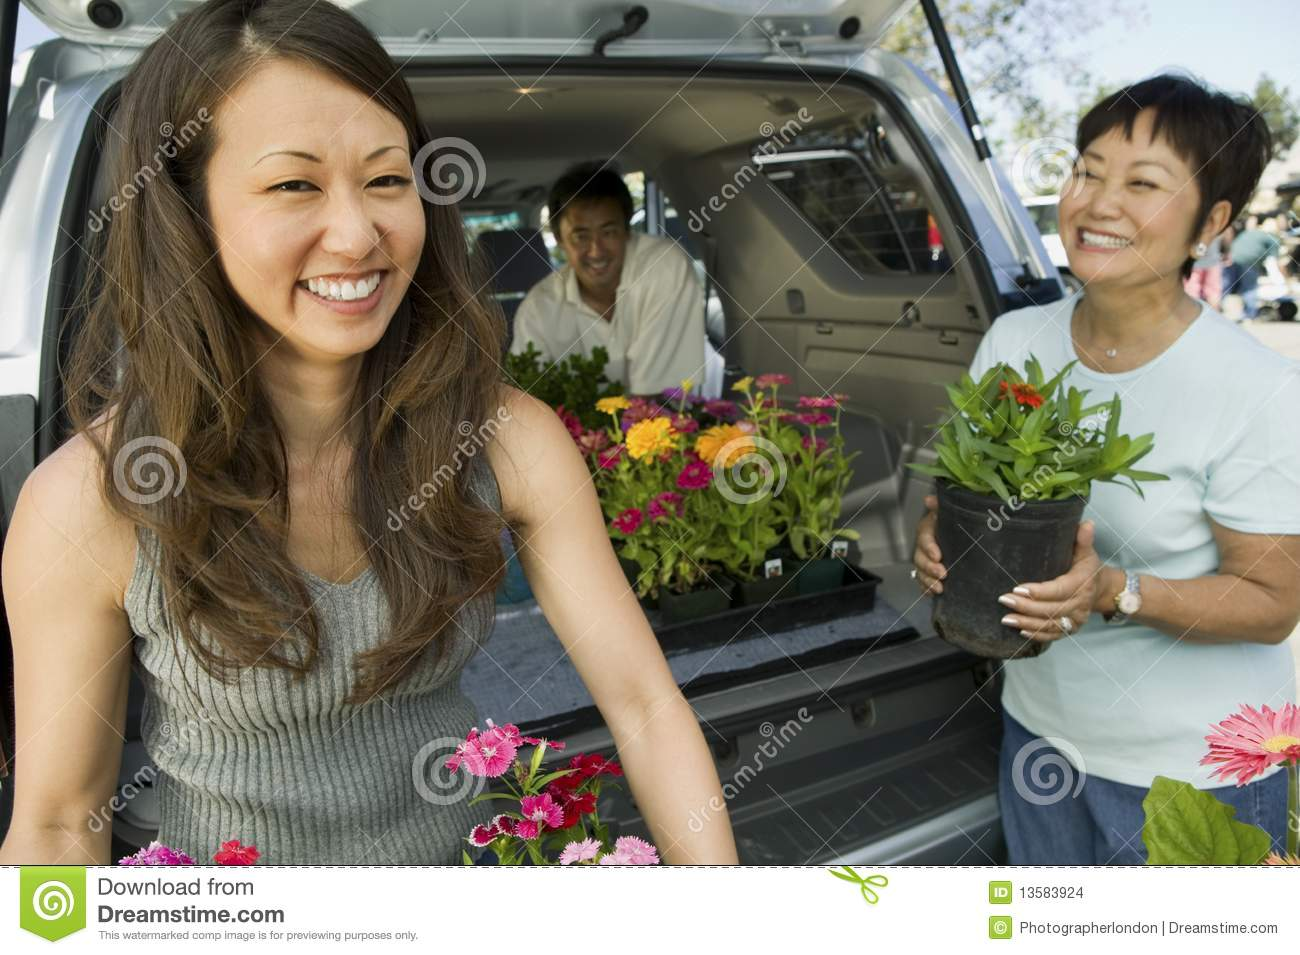 Family loading flowers into SUV